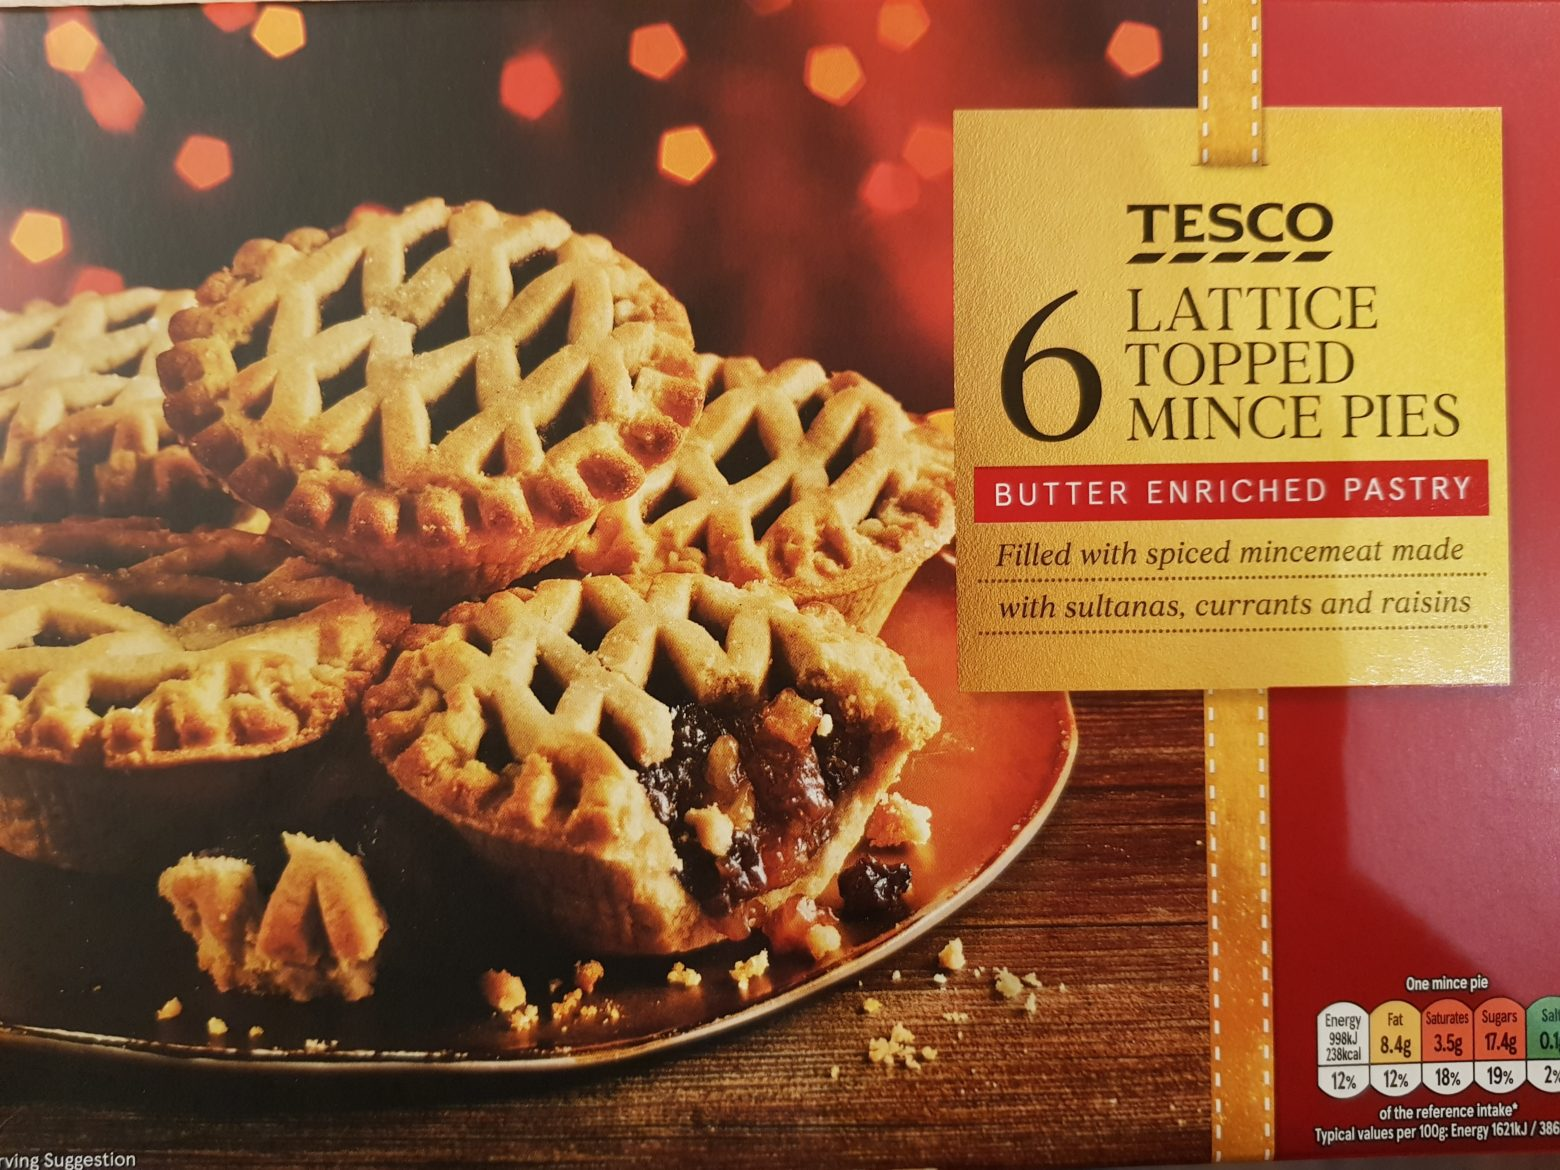 Tesco Lattice Topped Mince Pie Review 2019